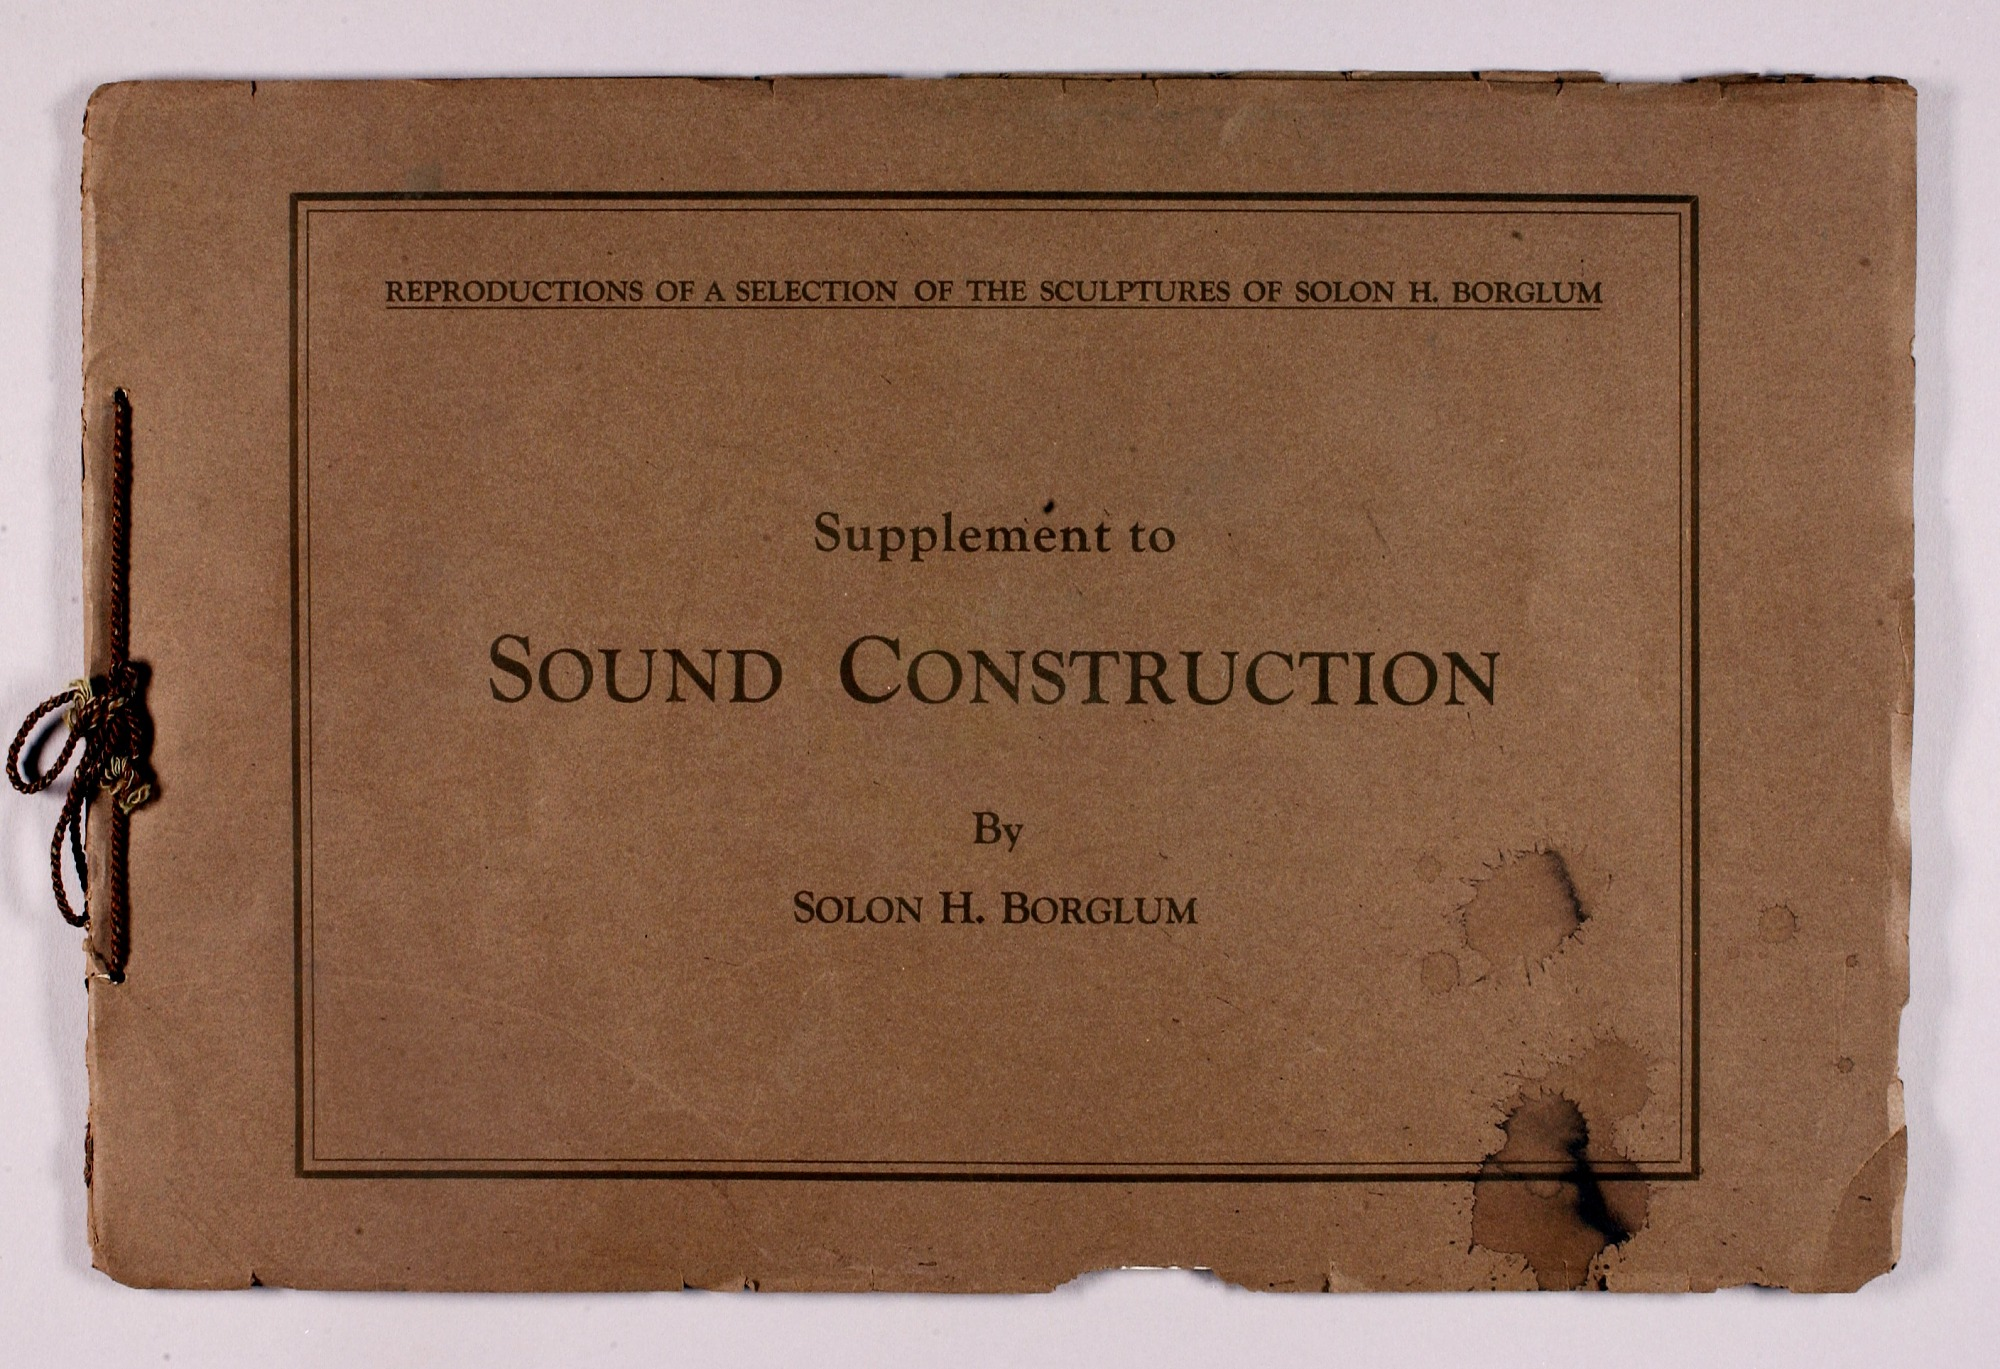 Supplement to Sound Construction